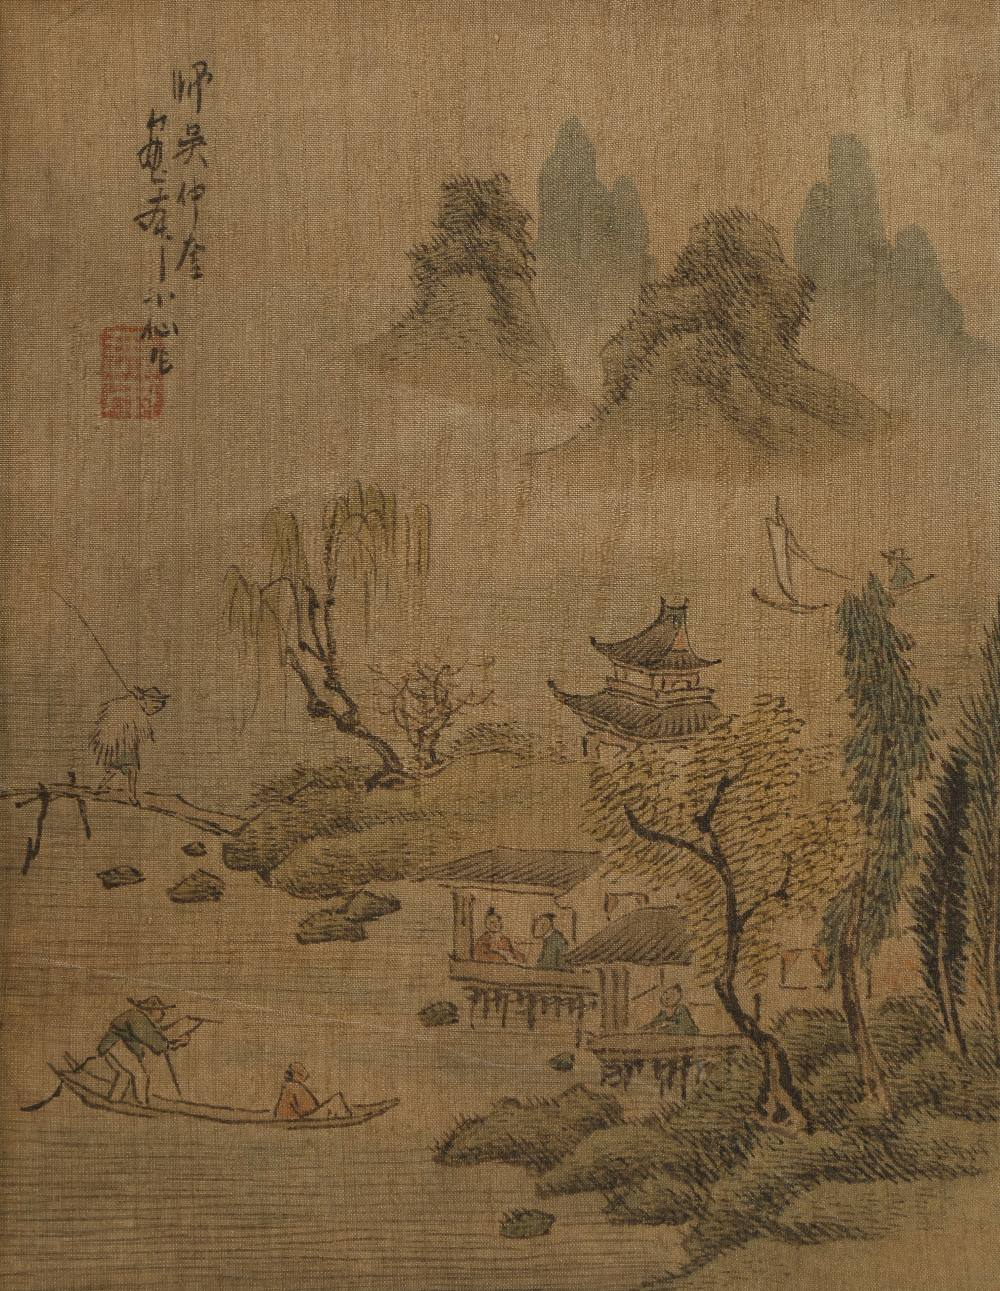 FEI CHENGWU (20TH CENTURY) SPARROW A Chinese painting, ink and colour on paper, signed Chengwu, with - Image 5 of 10